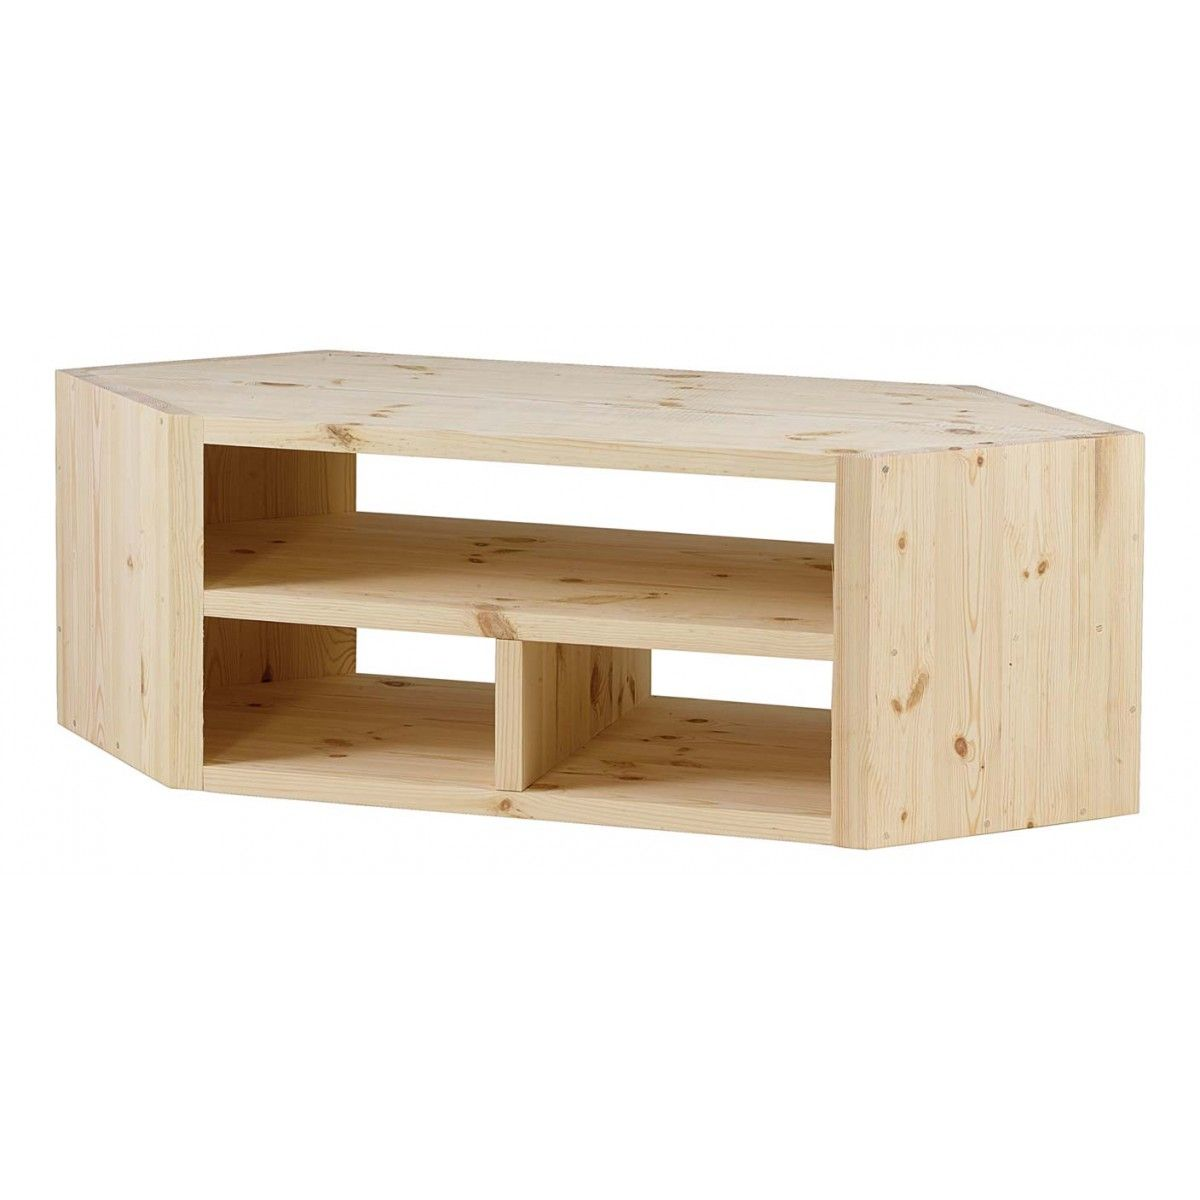 Meuble Tv D Angle Design Pin Massif Brut 3 Niches Matendance  # Meuble Hifi En Bois De Palette